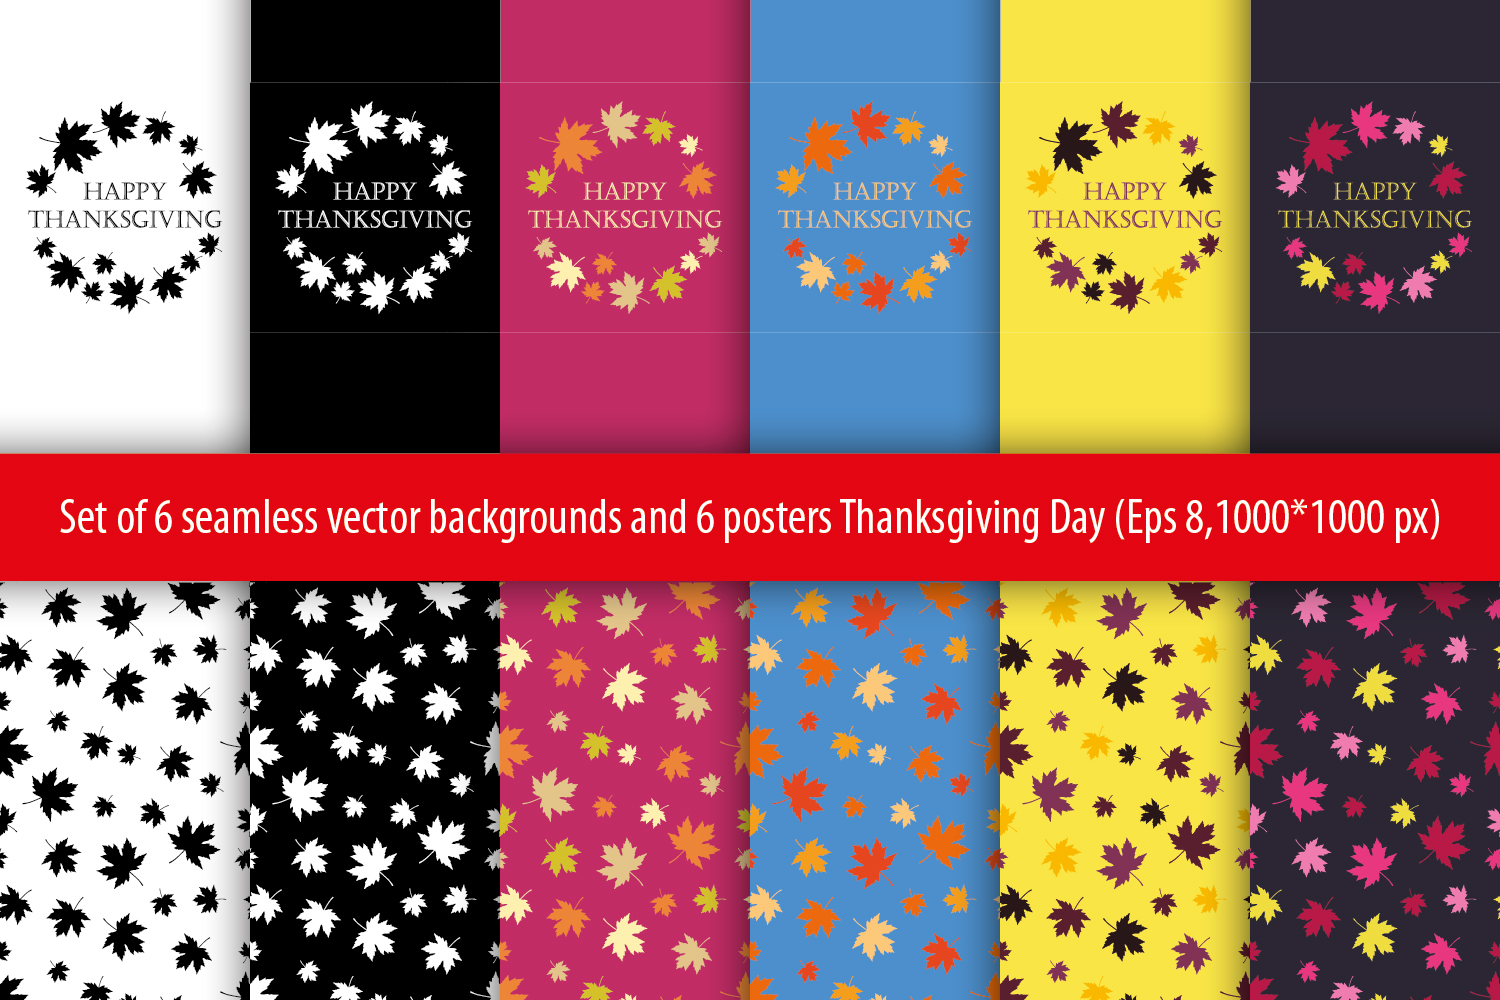 Set of 6 seamless vector backgrounds and 6 posters Thanksgiving Day. example image 1